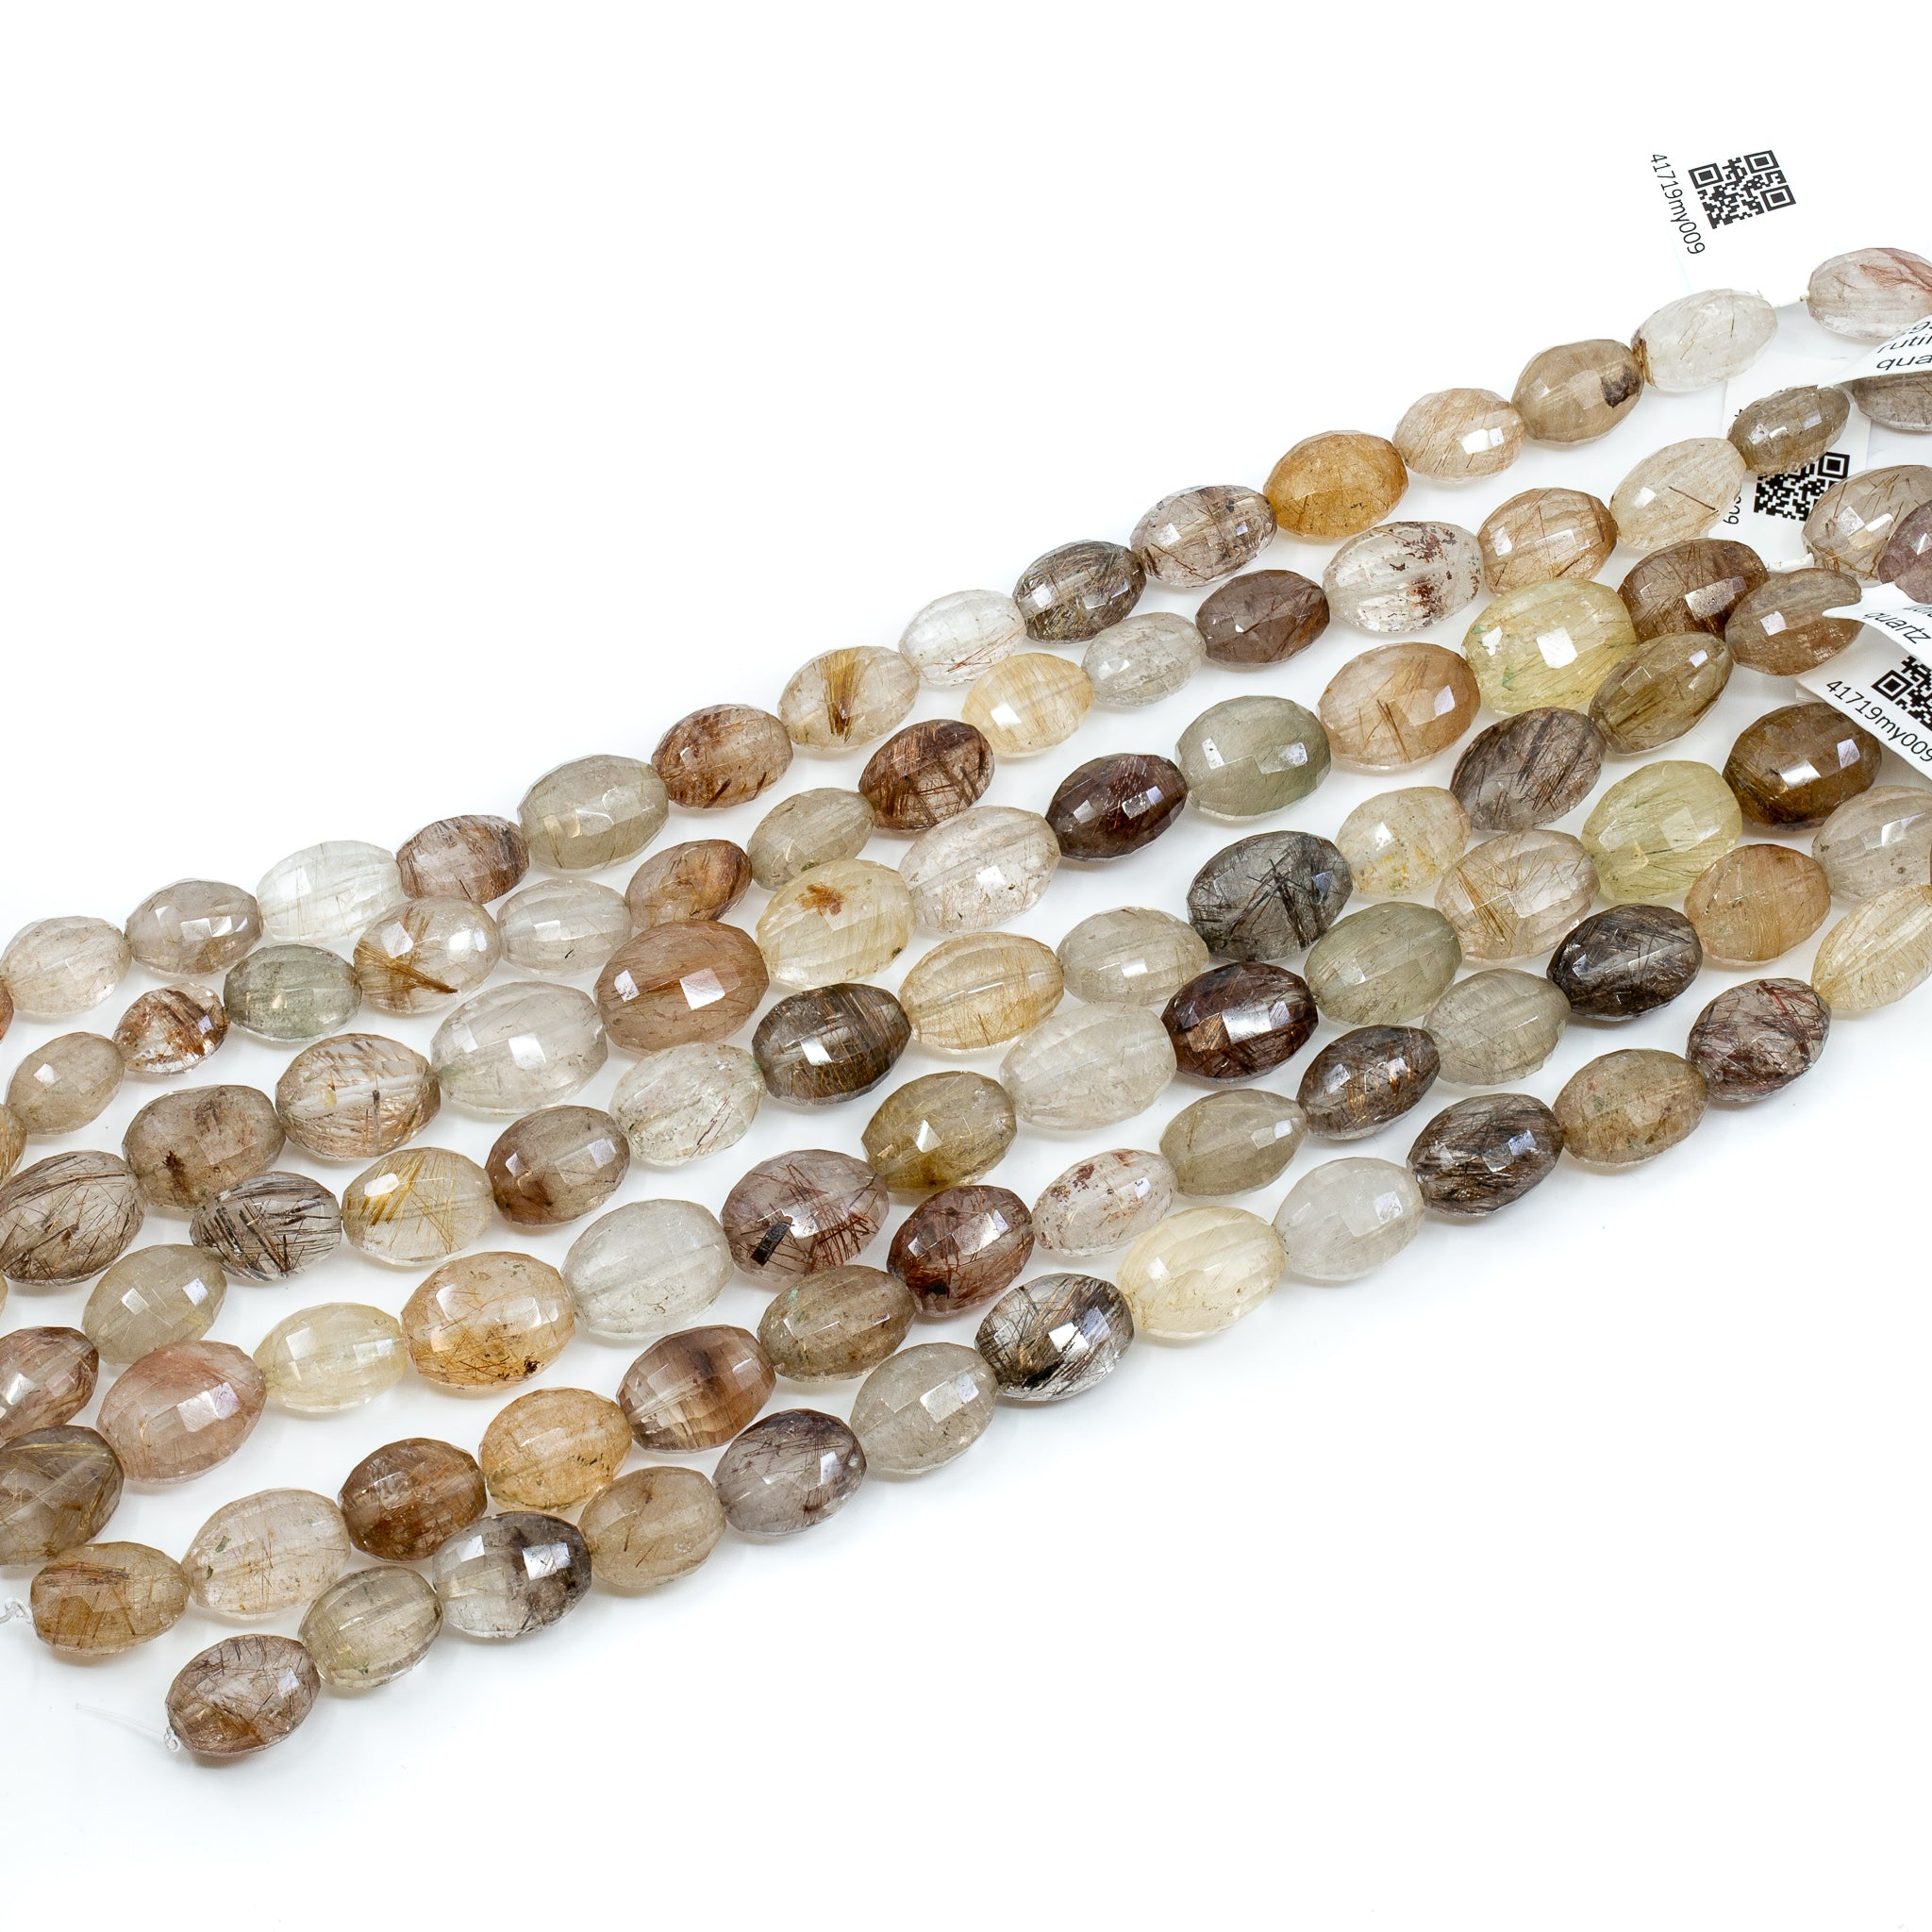 Rutilated Quartz Strand - 10x14mm Oval Rectangle Faceted Long-Drill